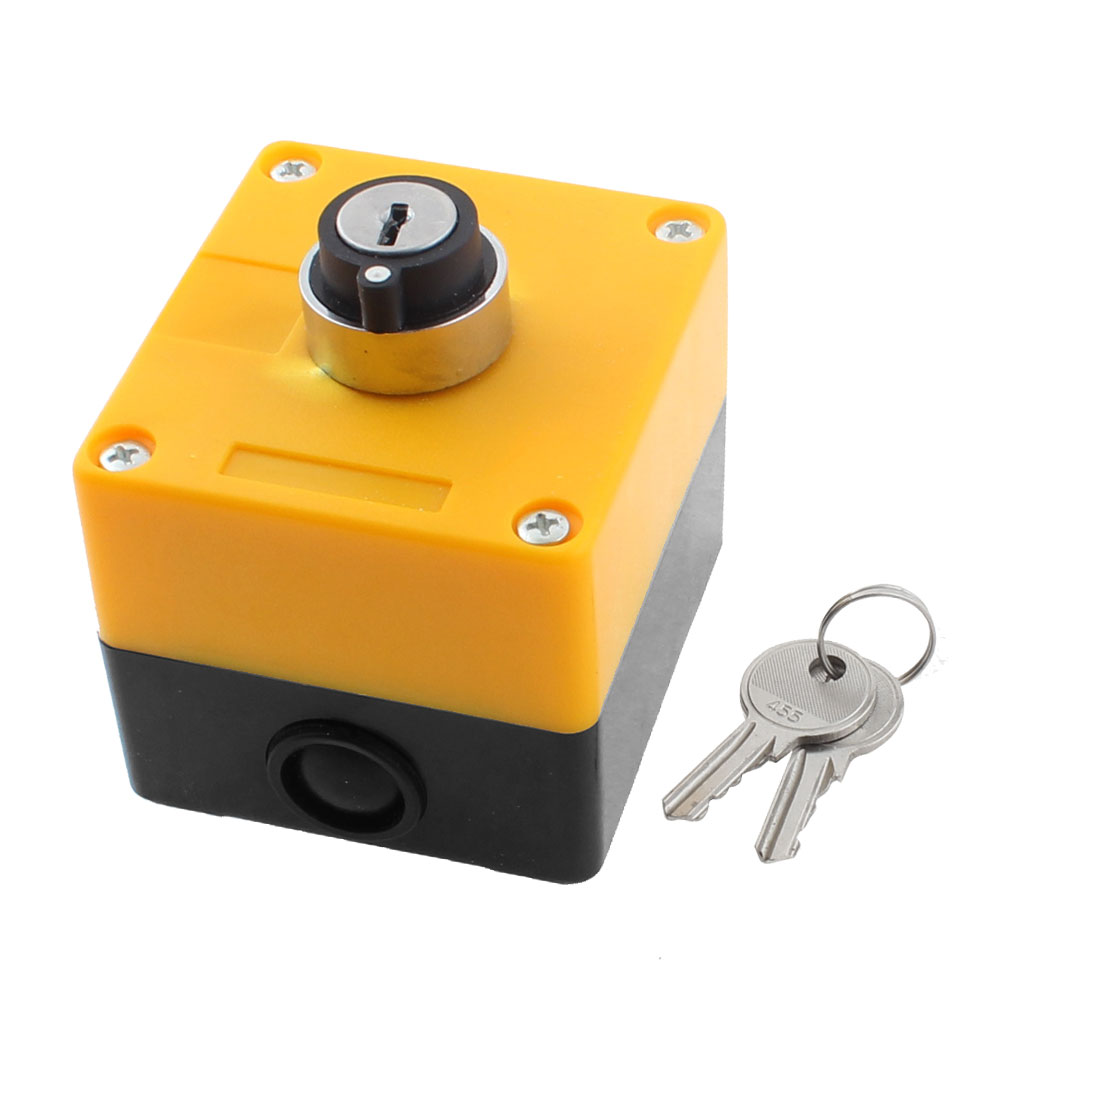 ZB2-BE101C 600V 10A 2 Positions Keylock Rotary Selector Select Switch Station